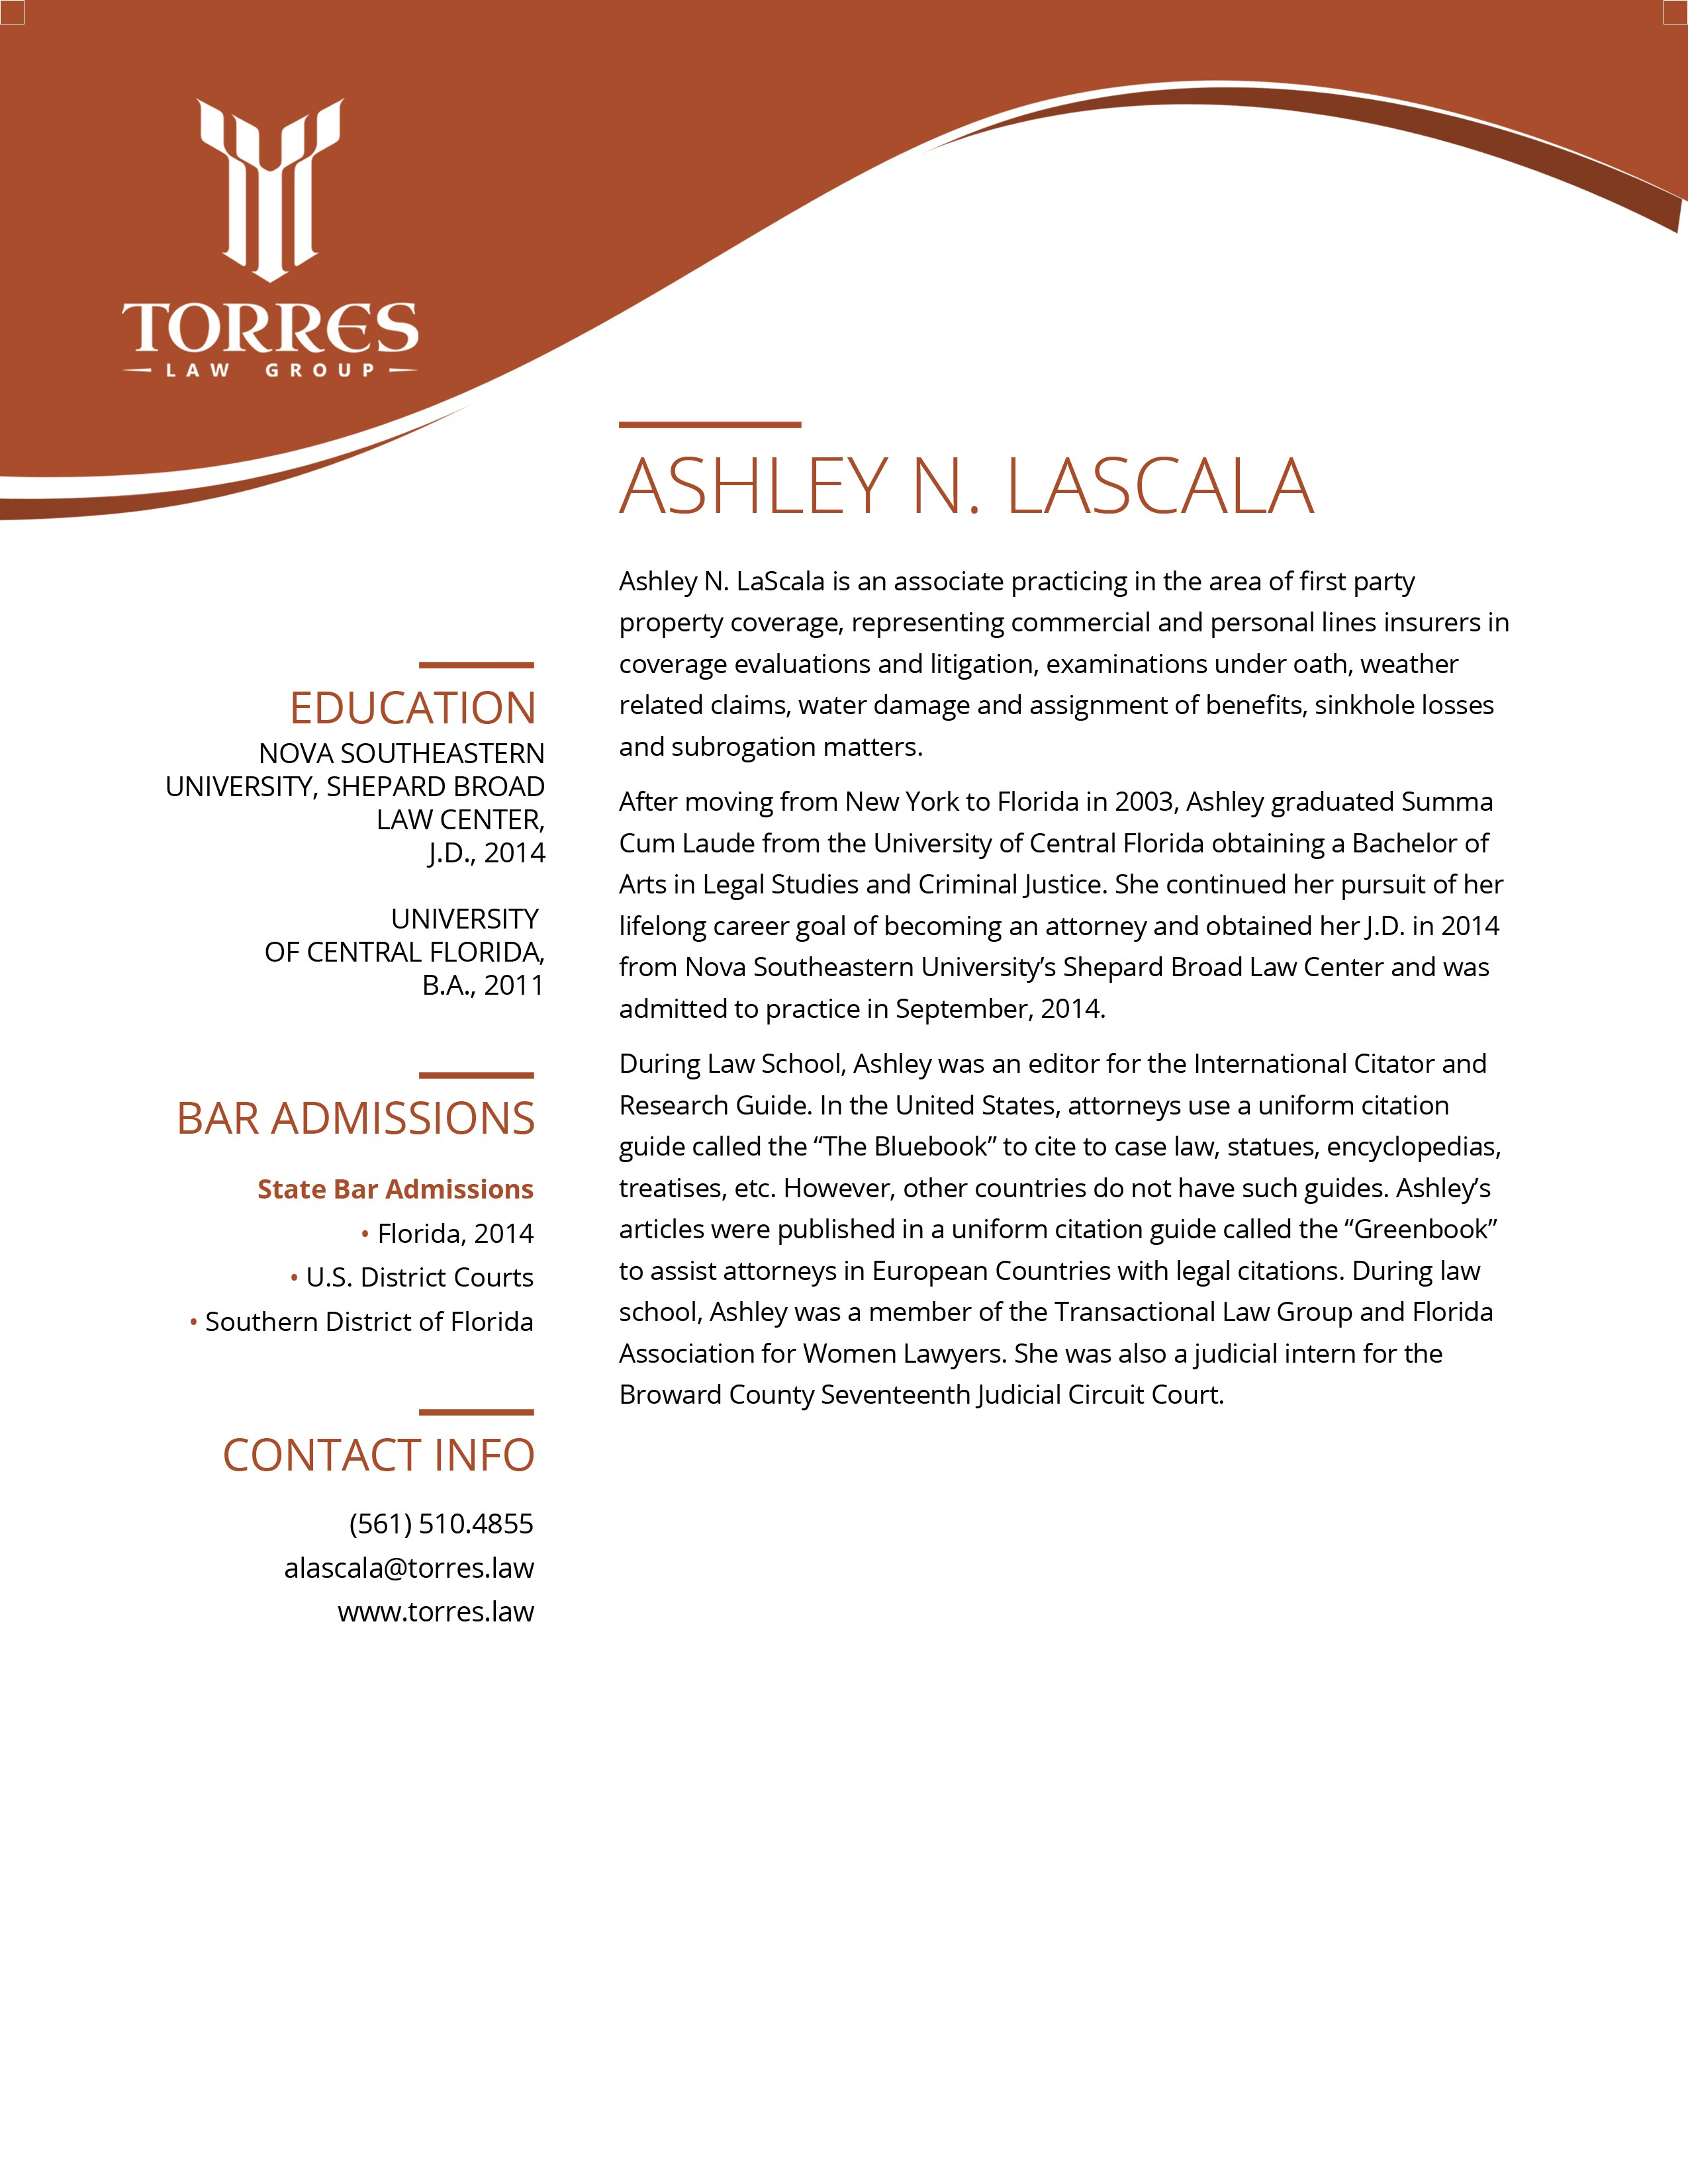 Tri-fold brochure for contemporary law firm